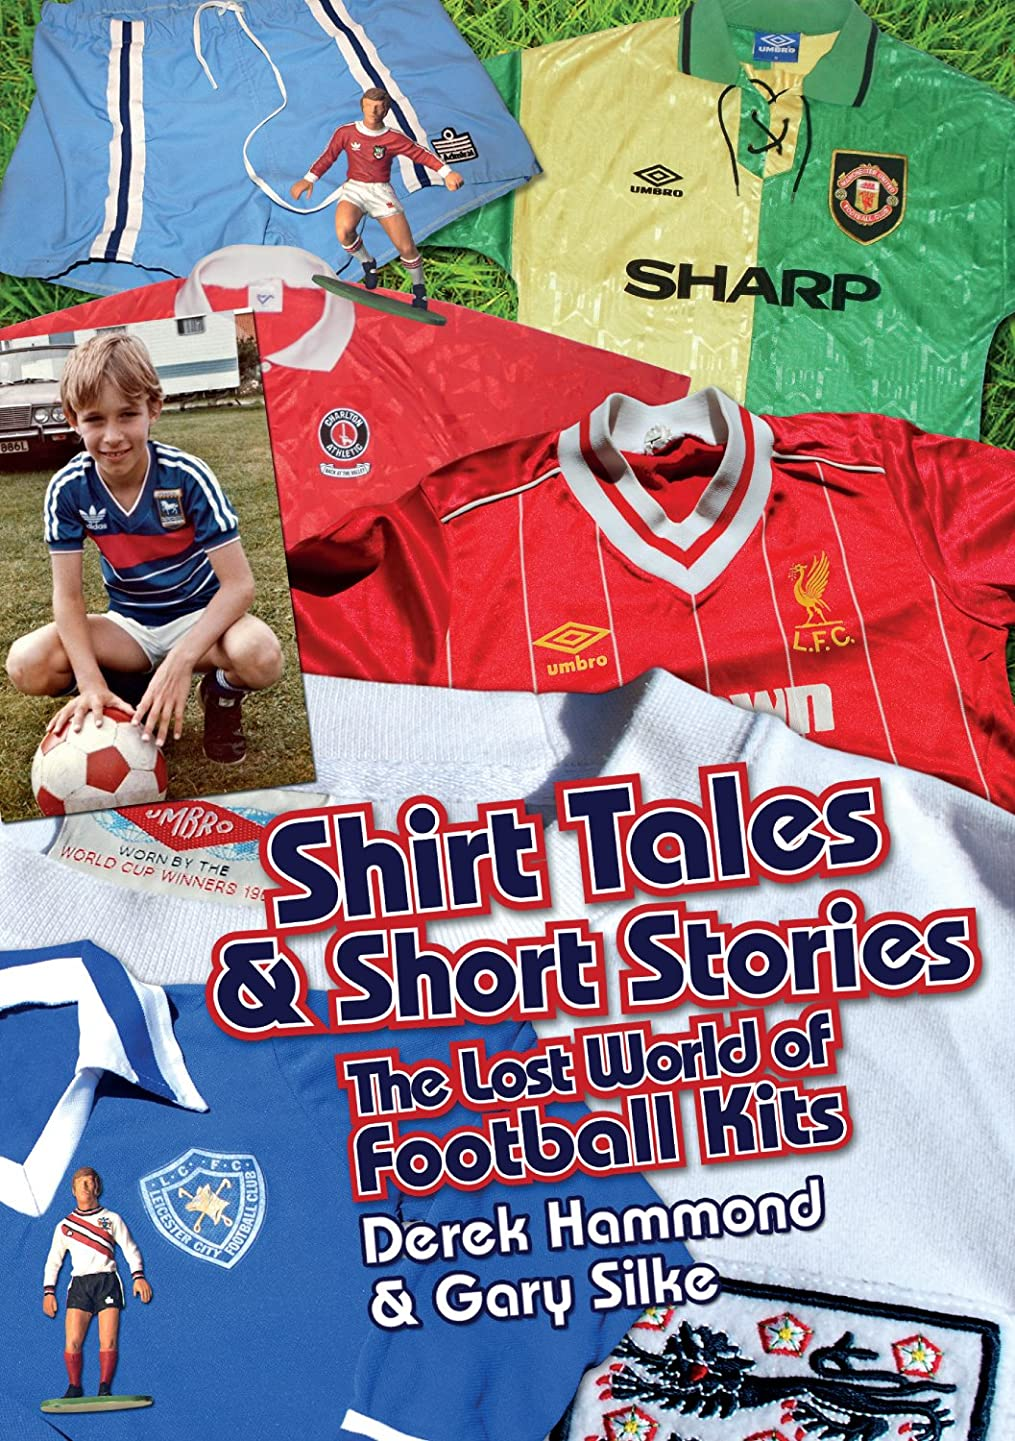 Shirt Tales and Short Stories: The Lost World of Classic Football Kits (Got, Not Got)